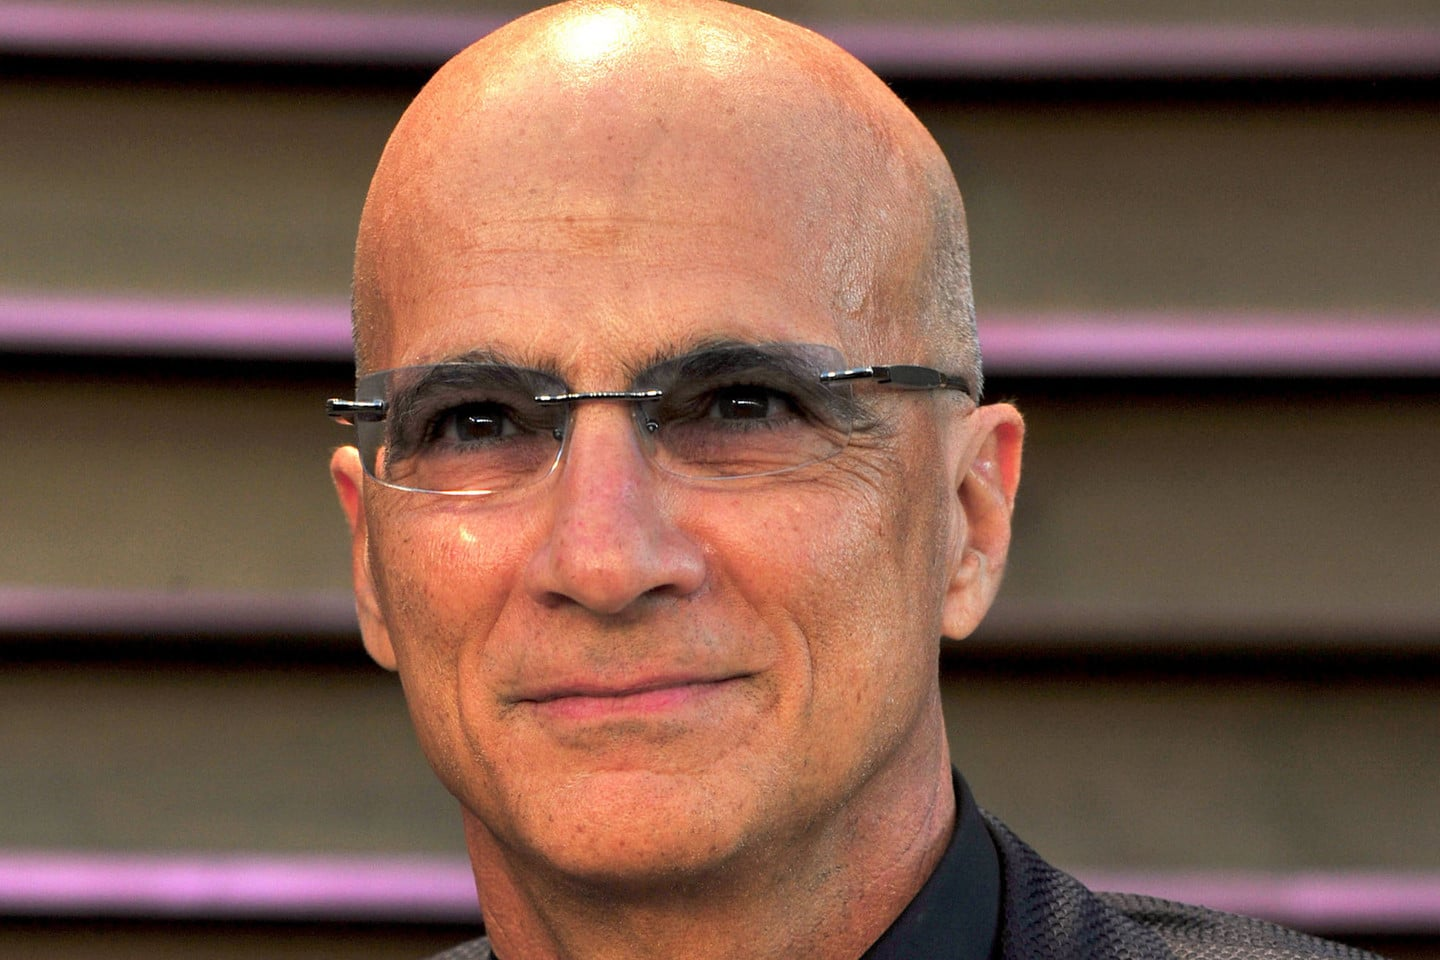 Apple Music's Jimmy Iovine is leaving Apple